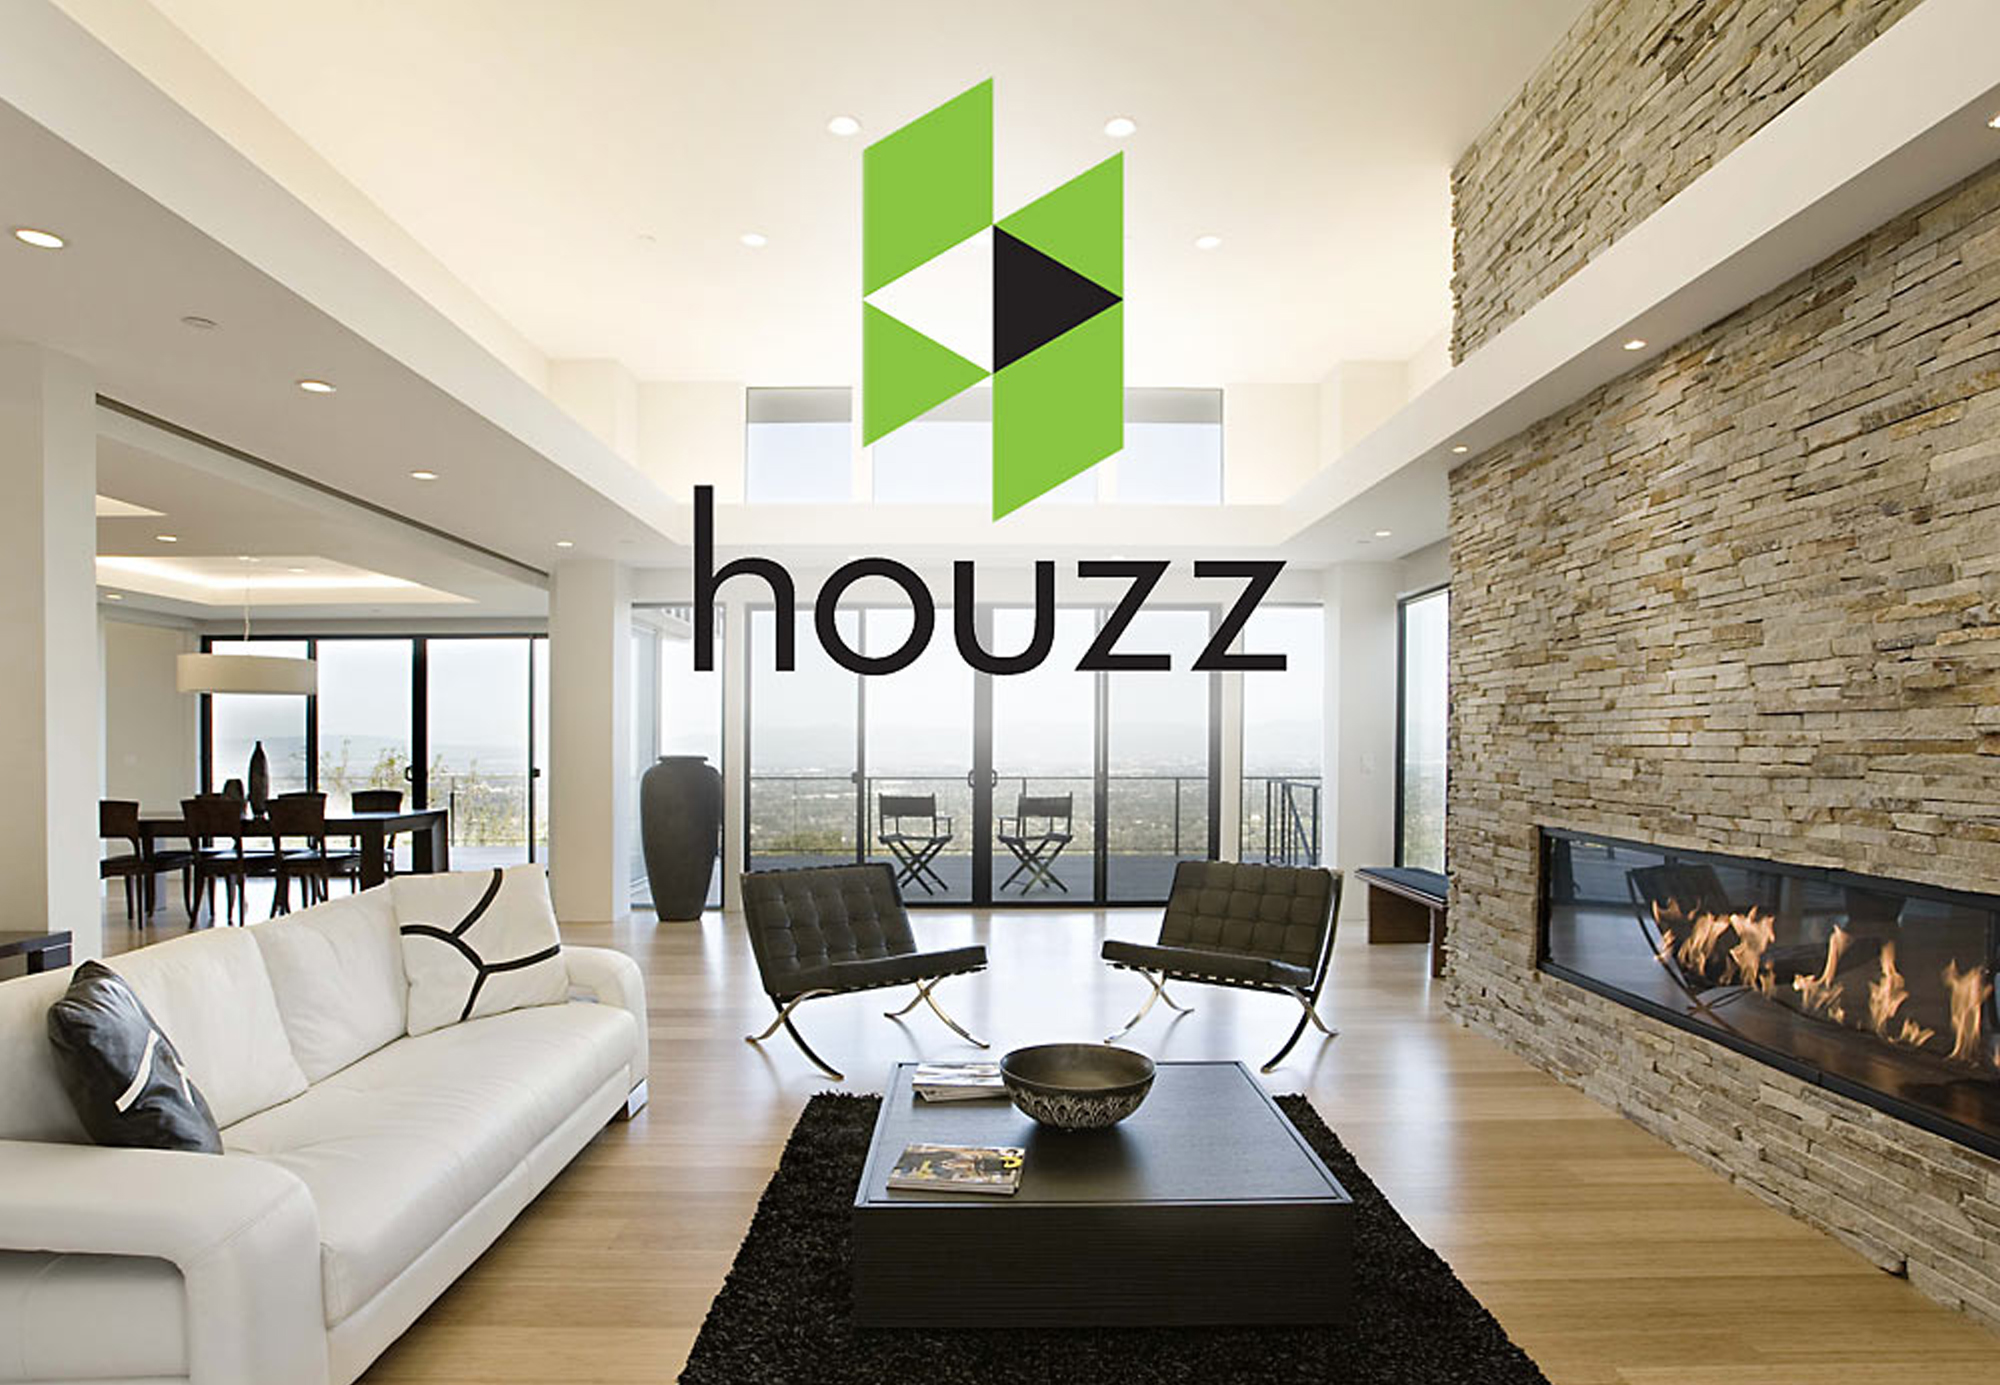 Houzz Is The Perfect Platform To Design The Interior Your